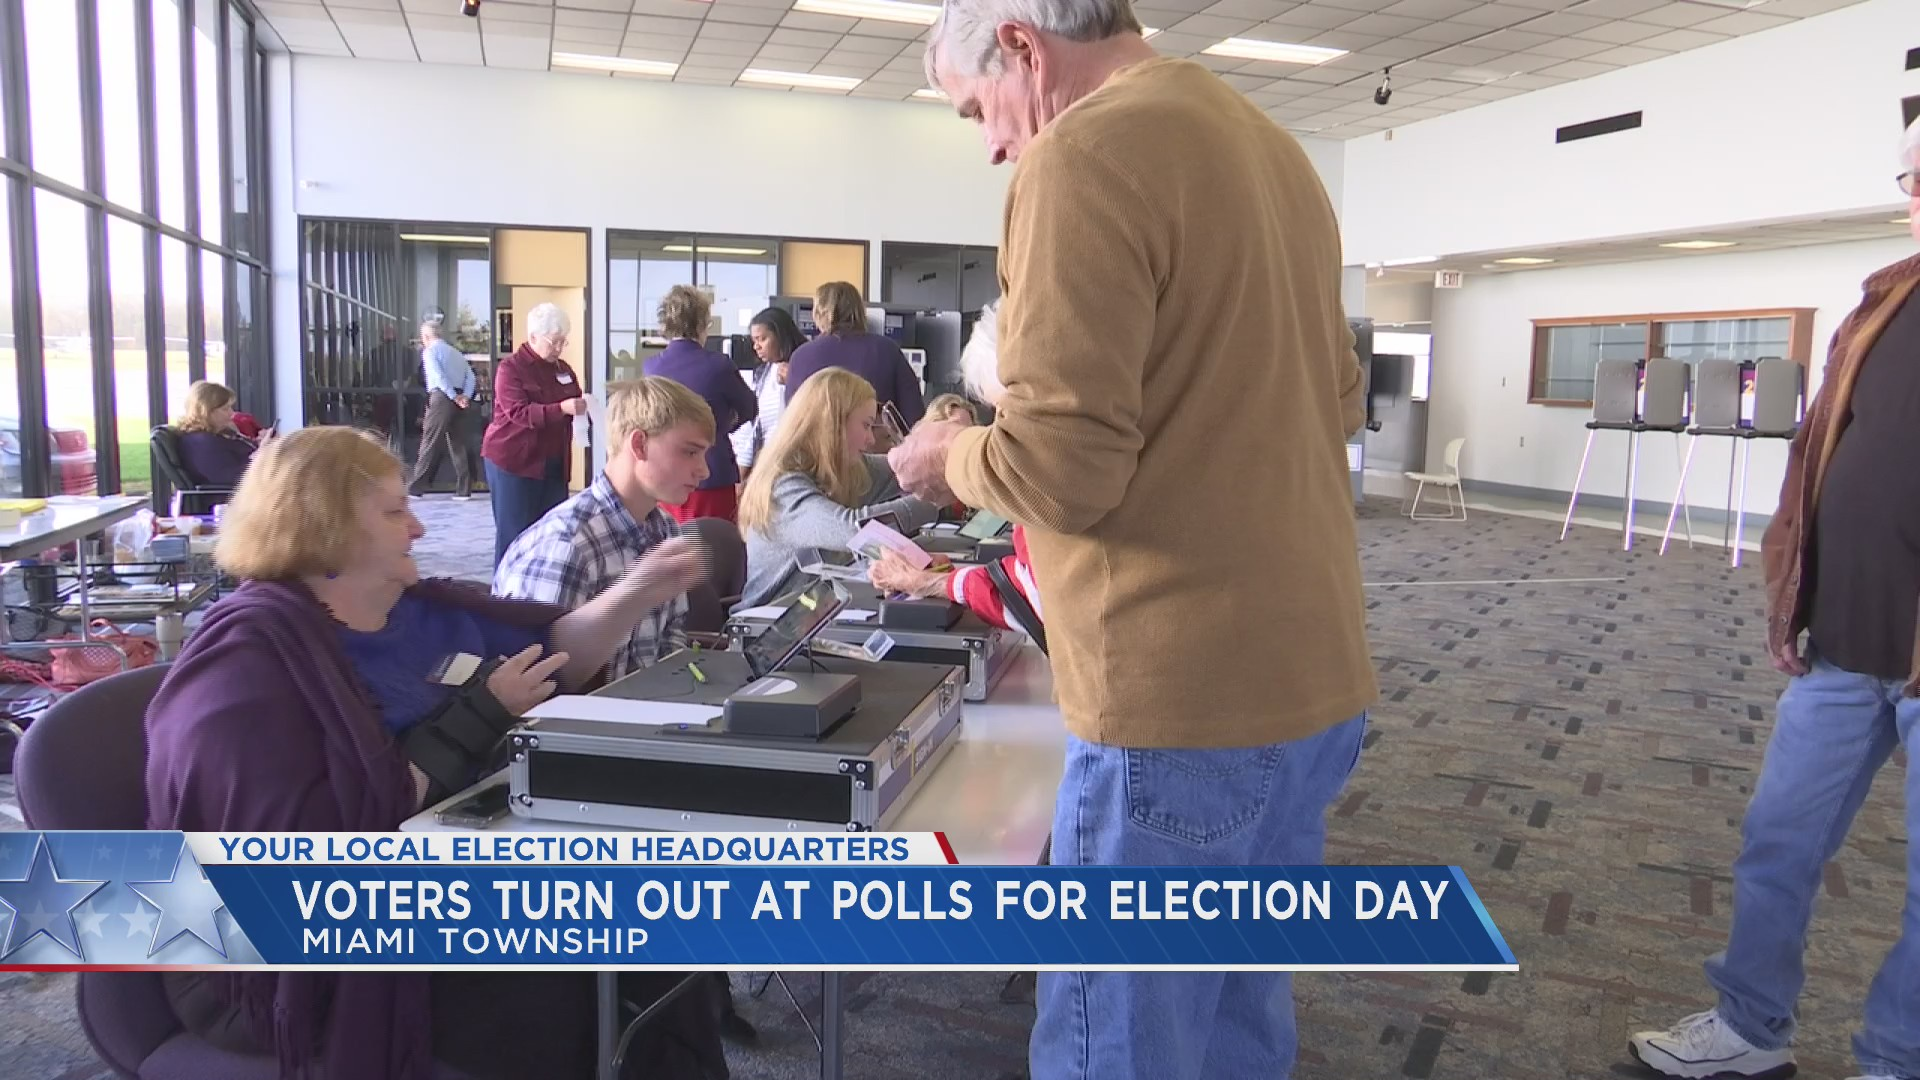 Voters turn out at polls for Election Day